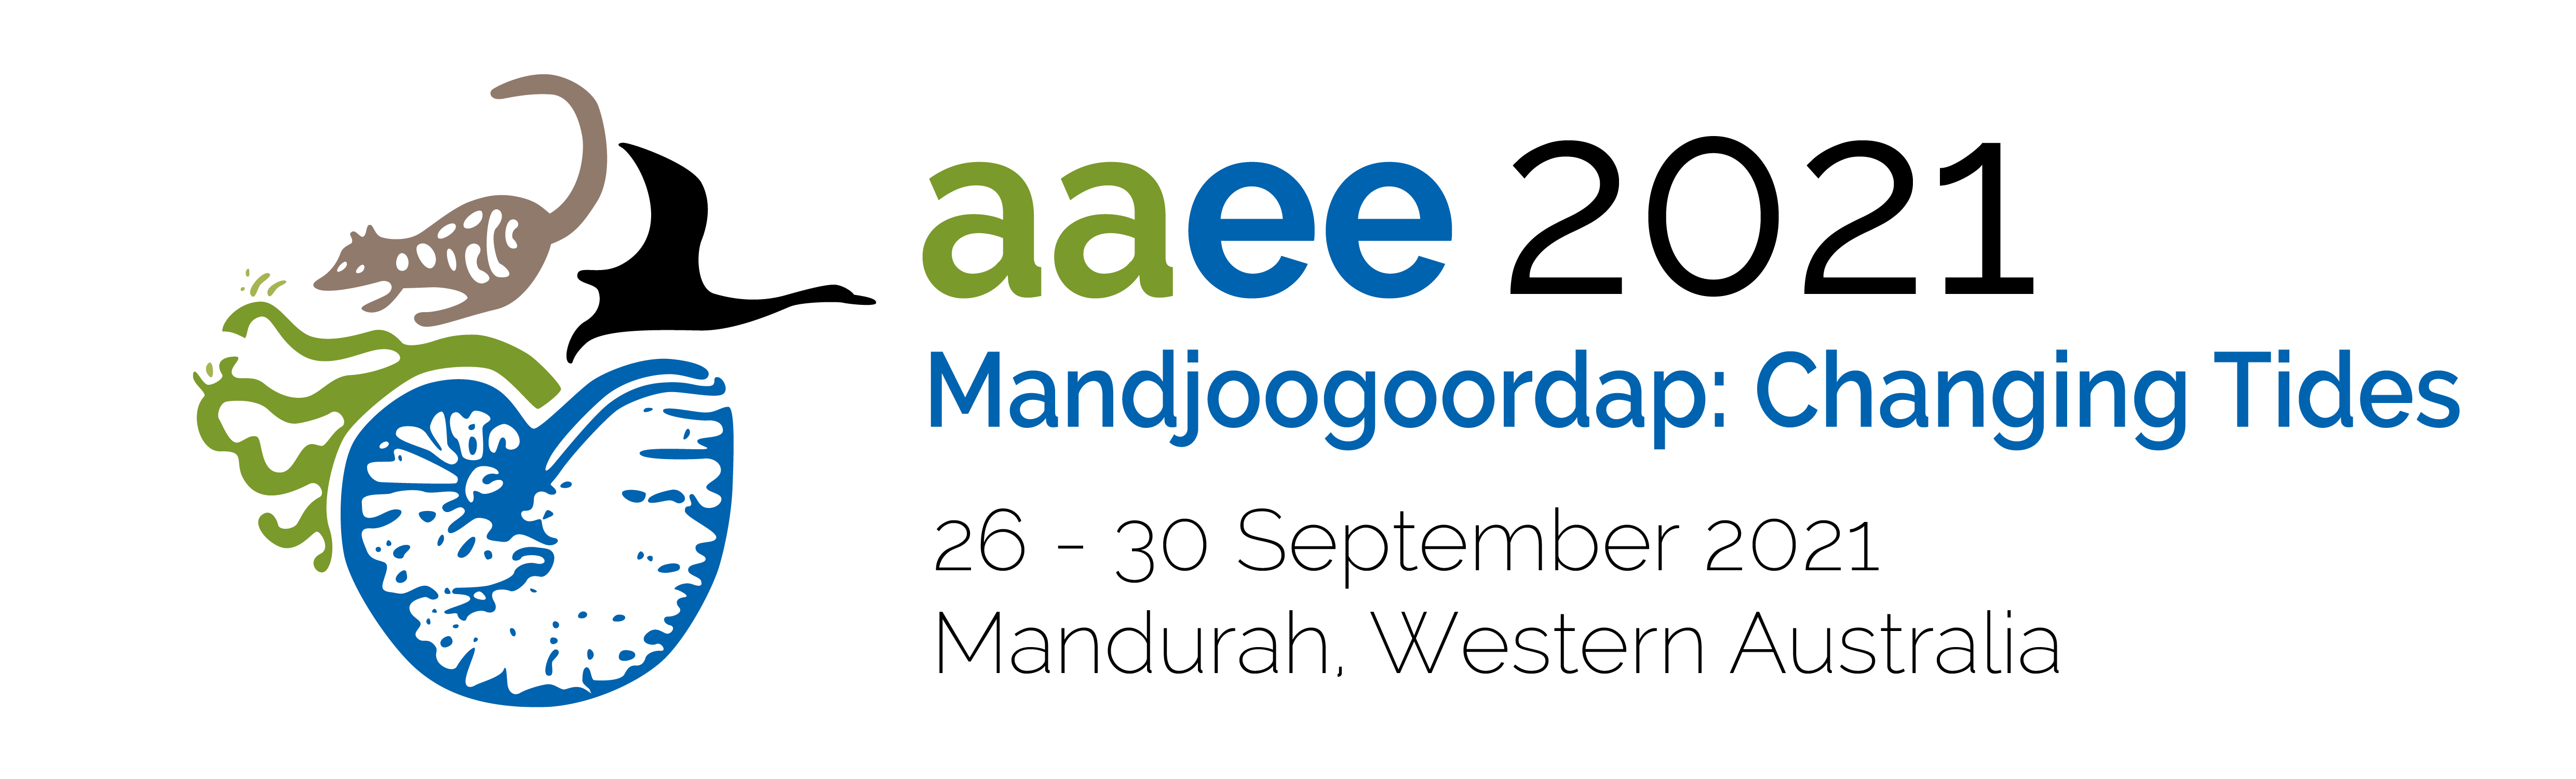 AAEE Conference 2021